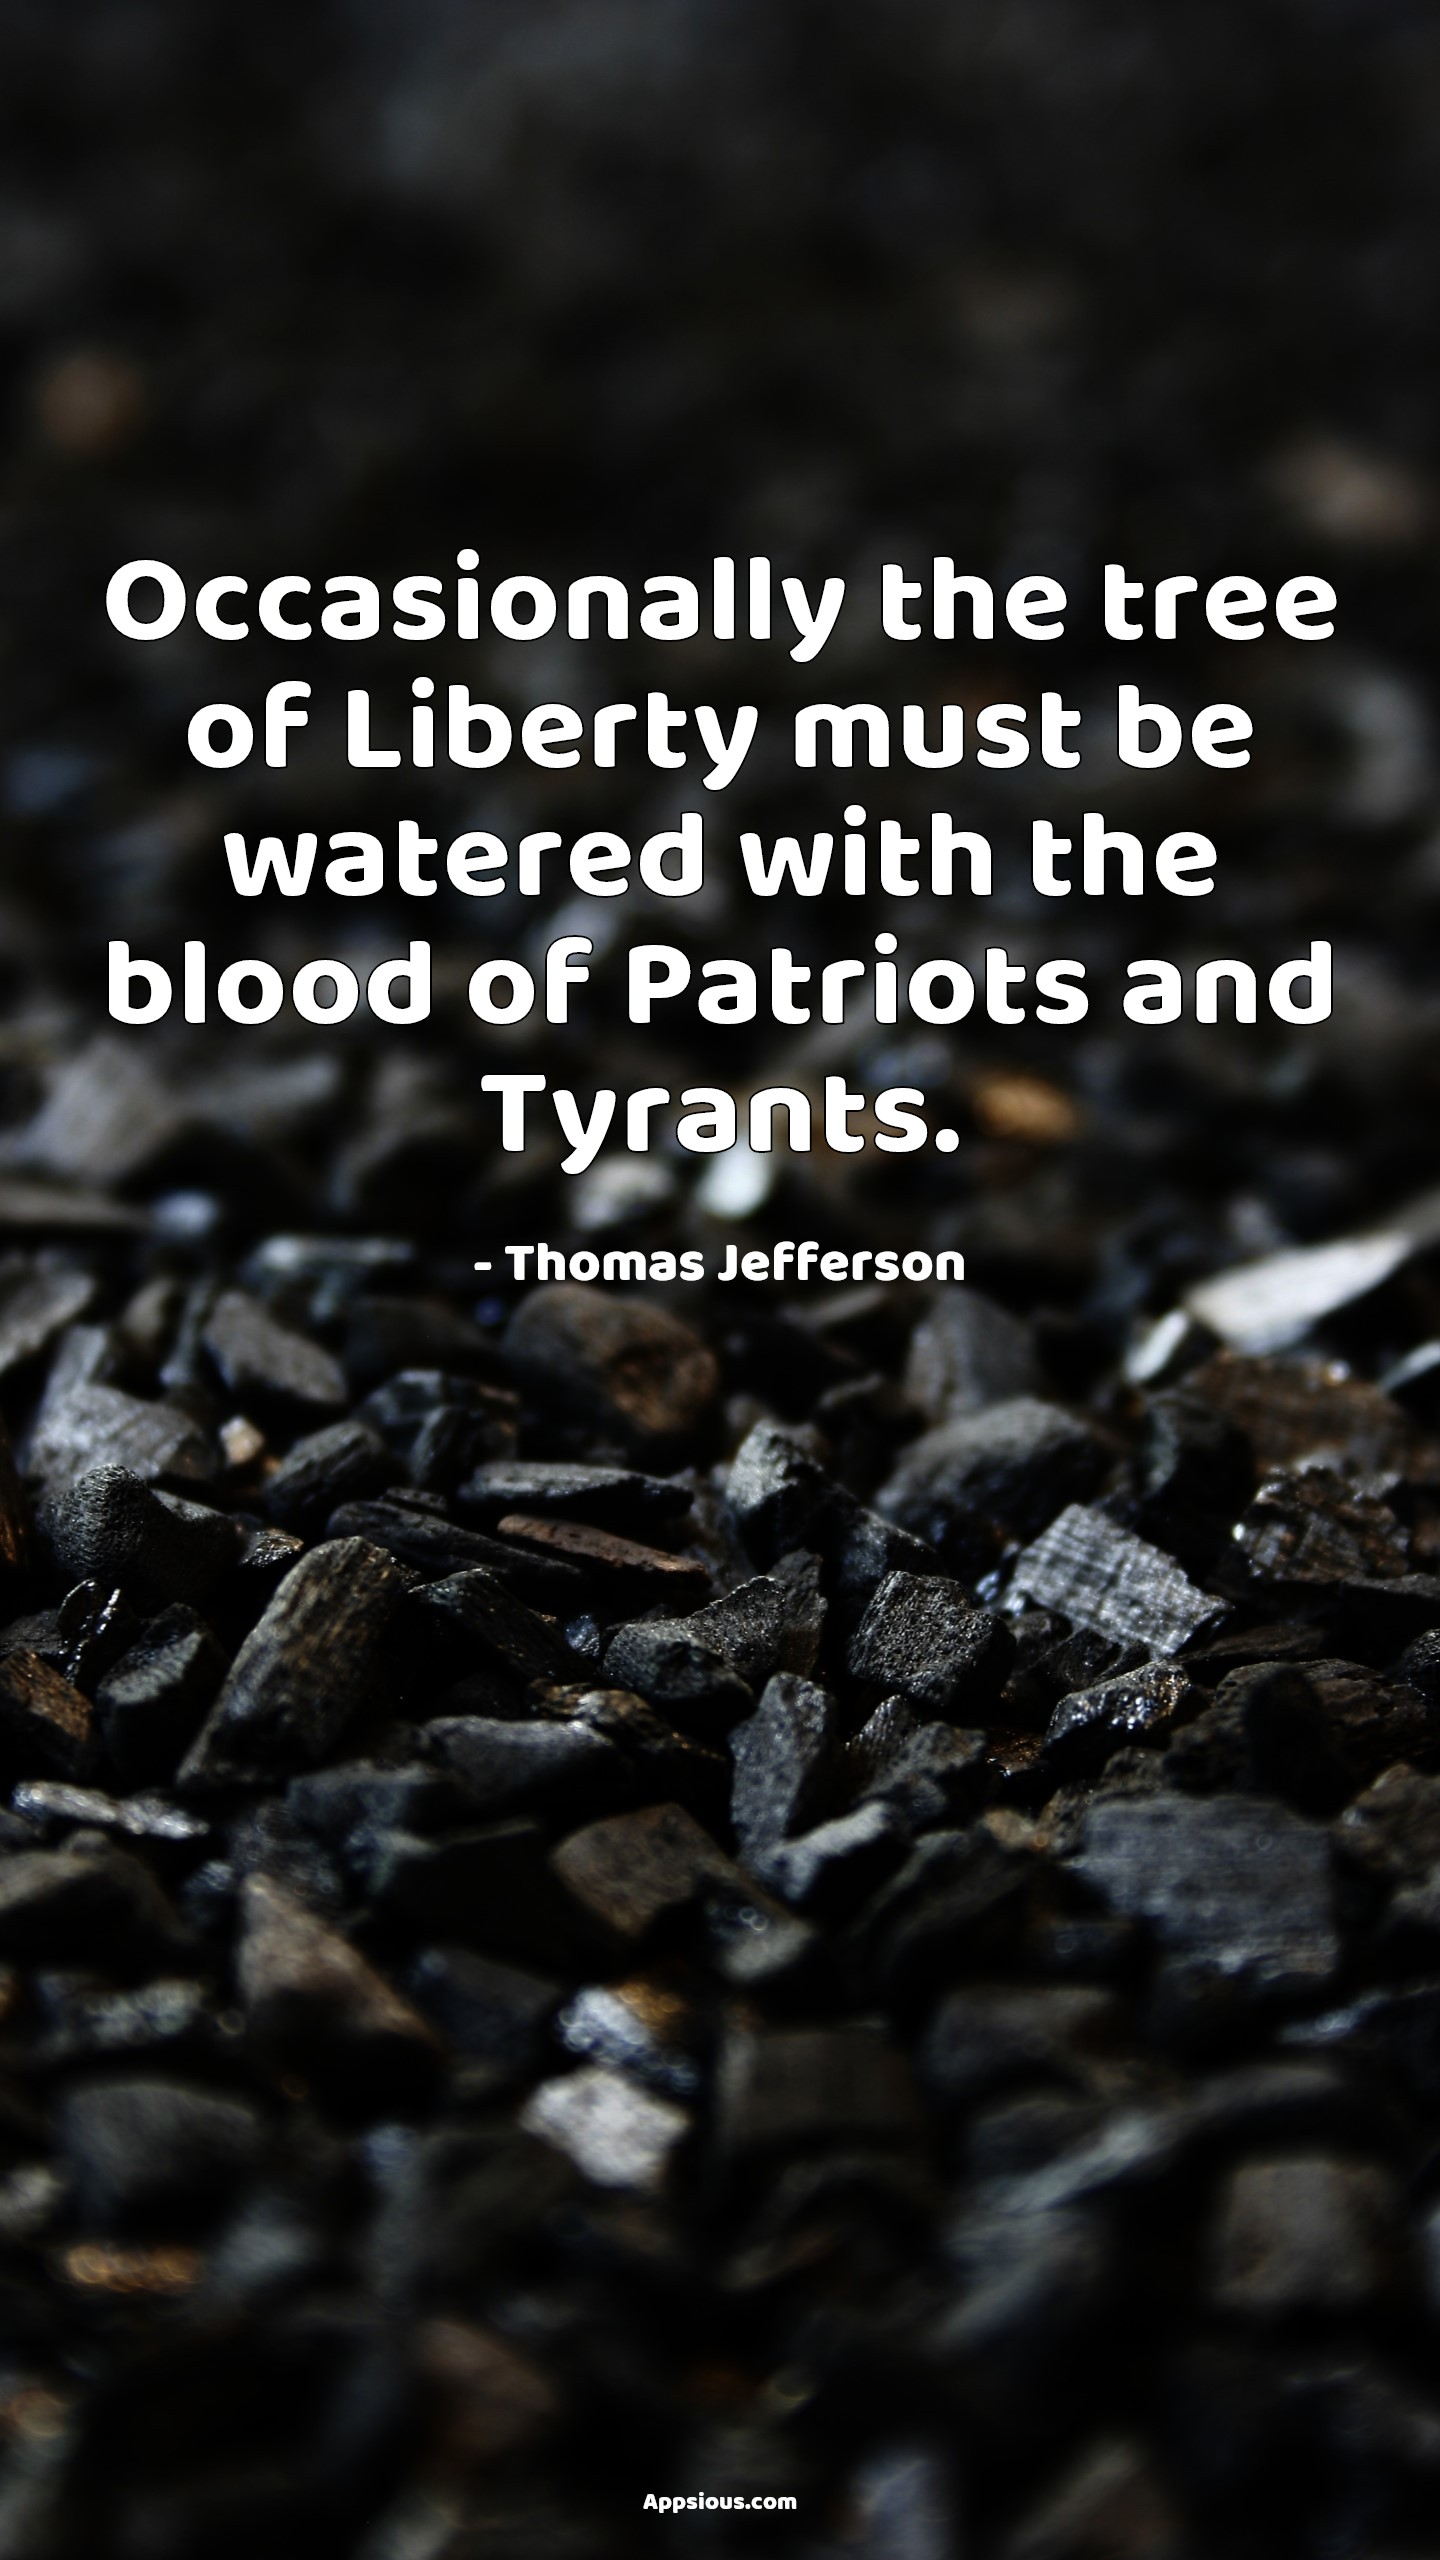 Occasionally the tree of Liberty must be watered with the blood of Patriots and Tyrants.